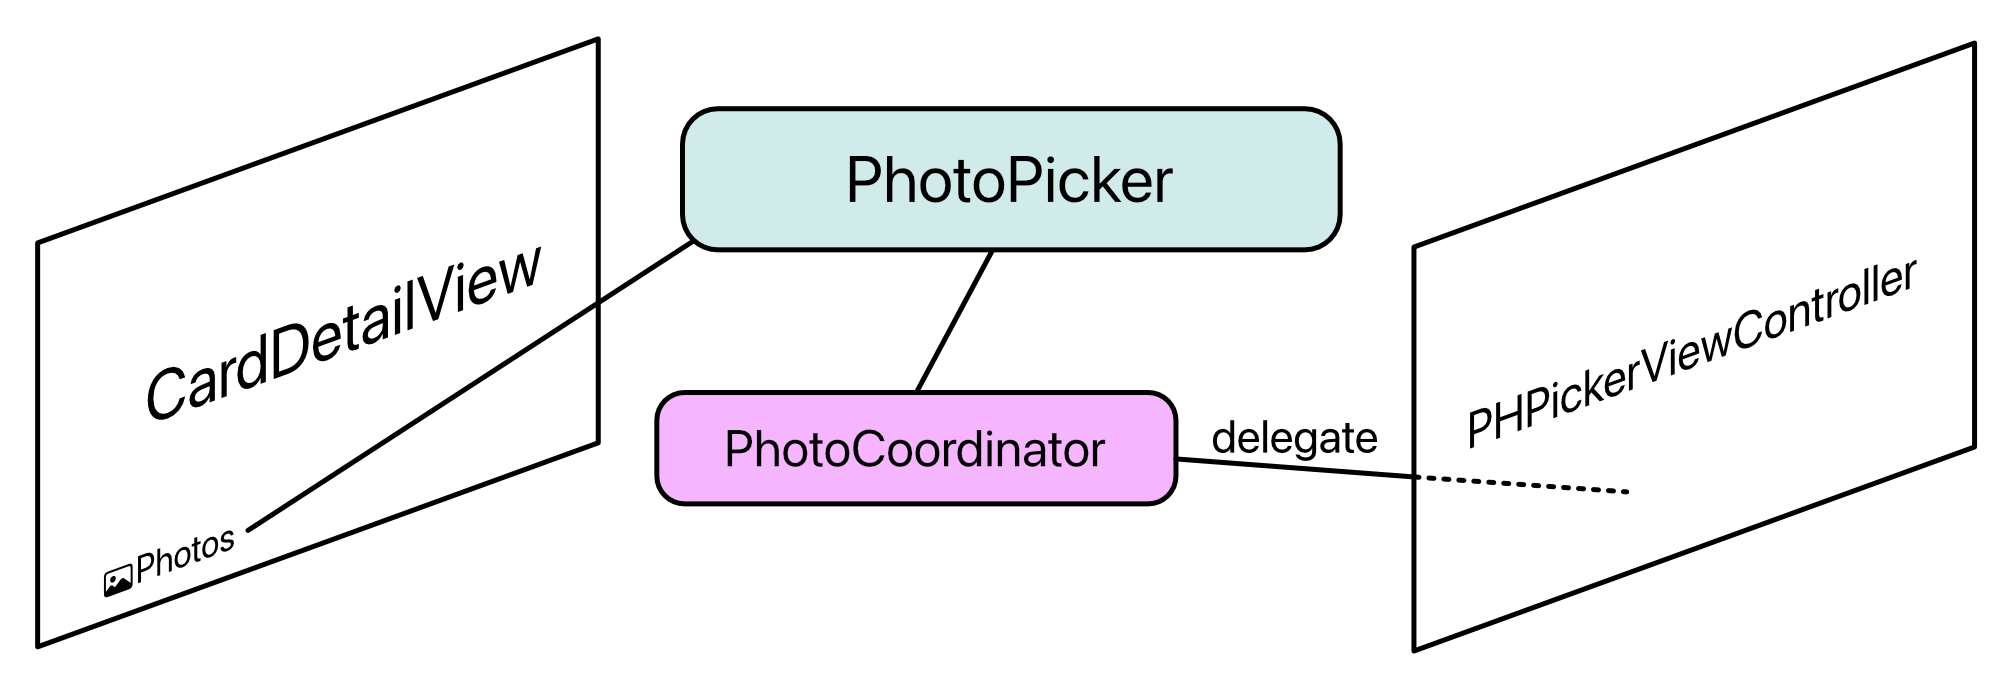 Representable PhotoPicker with delegation